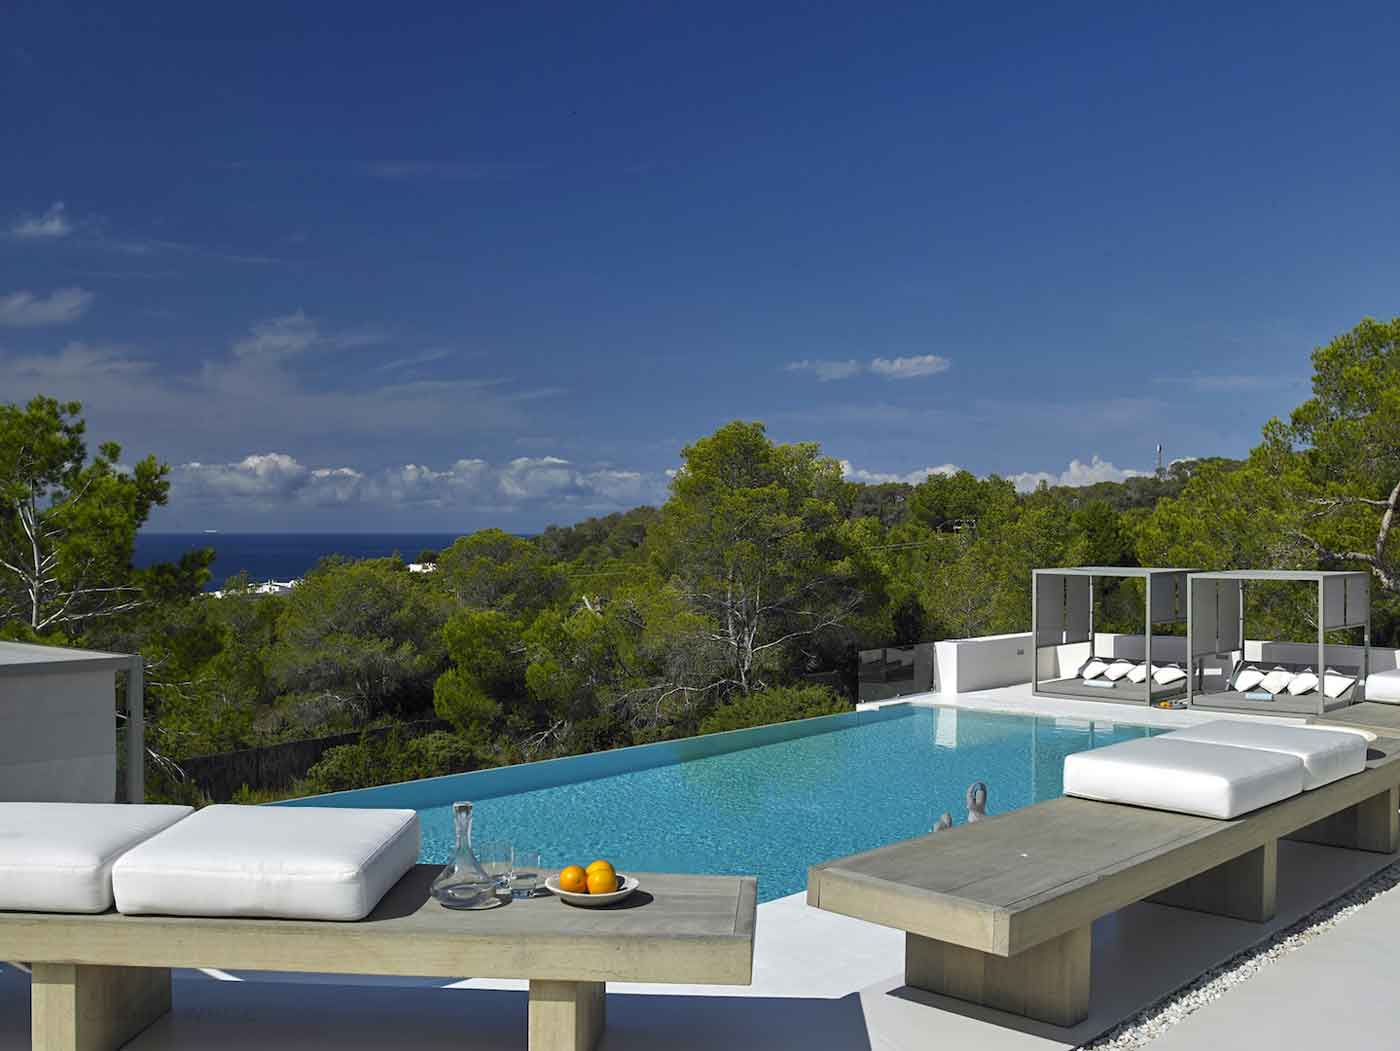 The glamorous island of Ibiza is the setting for this luxury villa. An infinity pool evokes a chic, resort-style atmosphere with daybeds, cabanas, and views of the surrounding greenery and deep sapphire-blue waters.